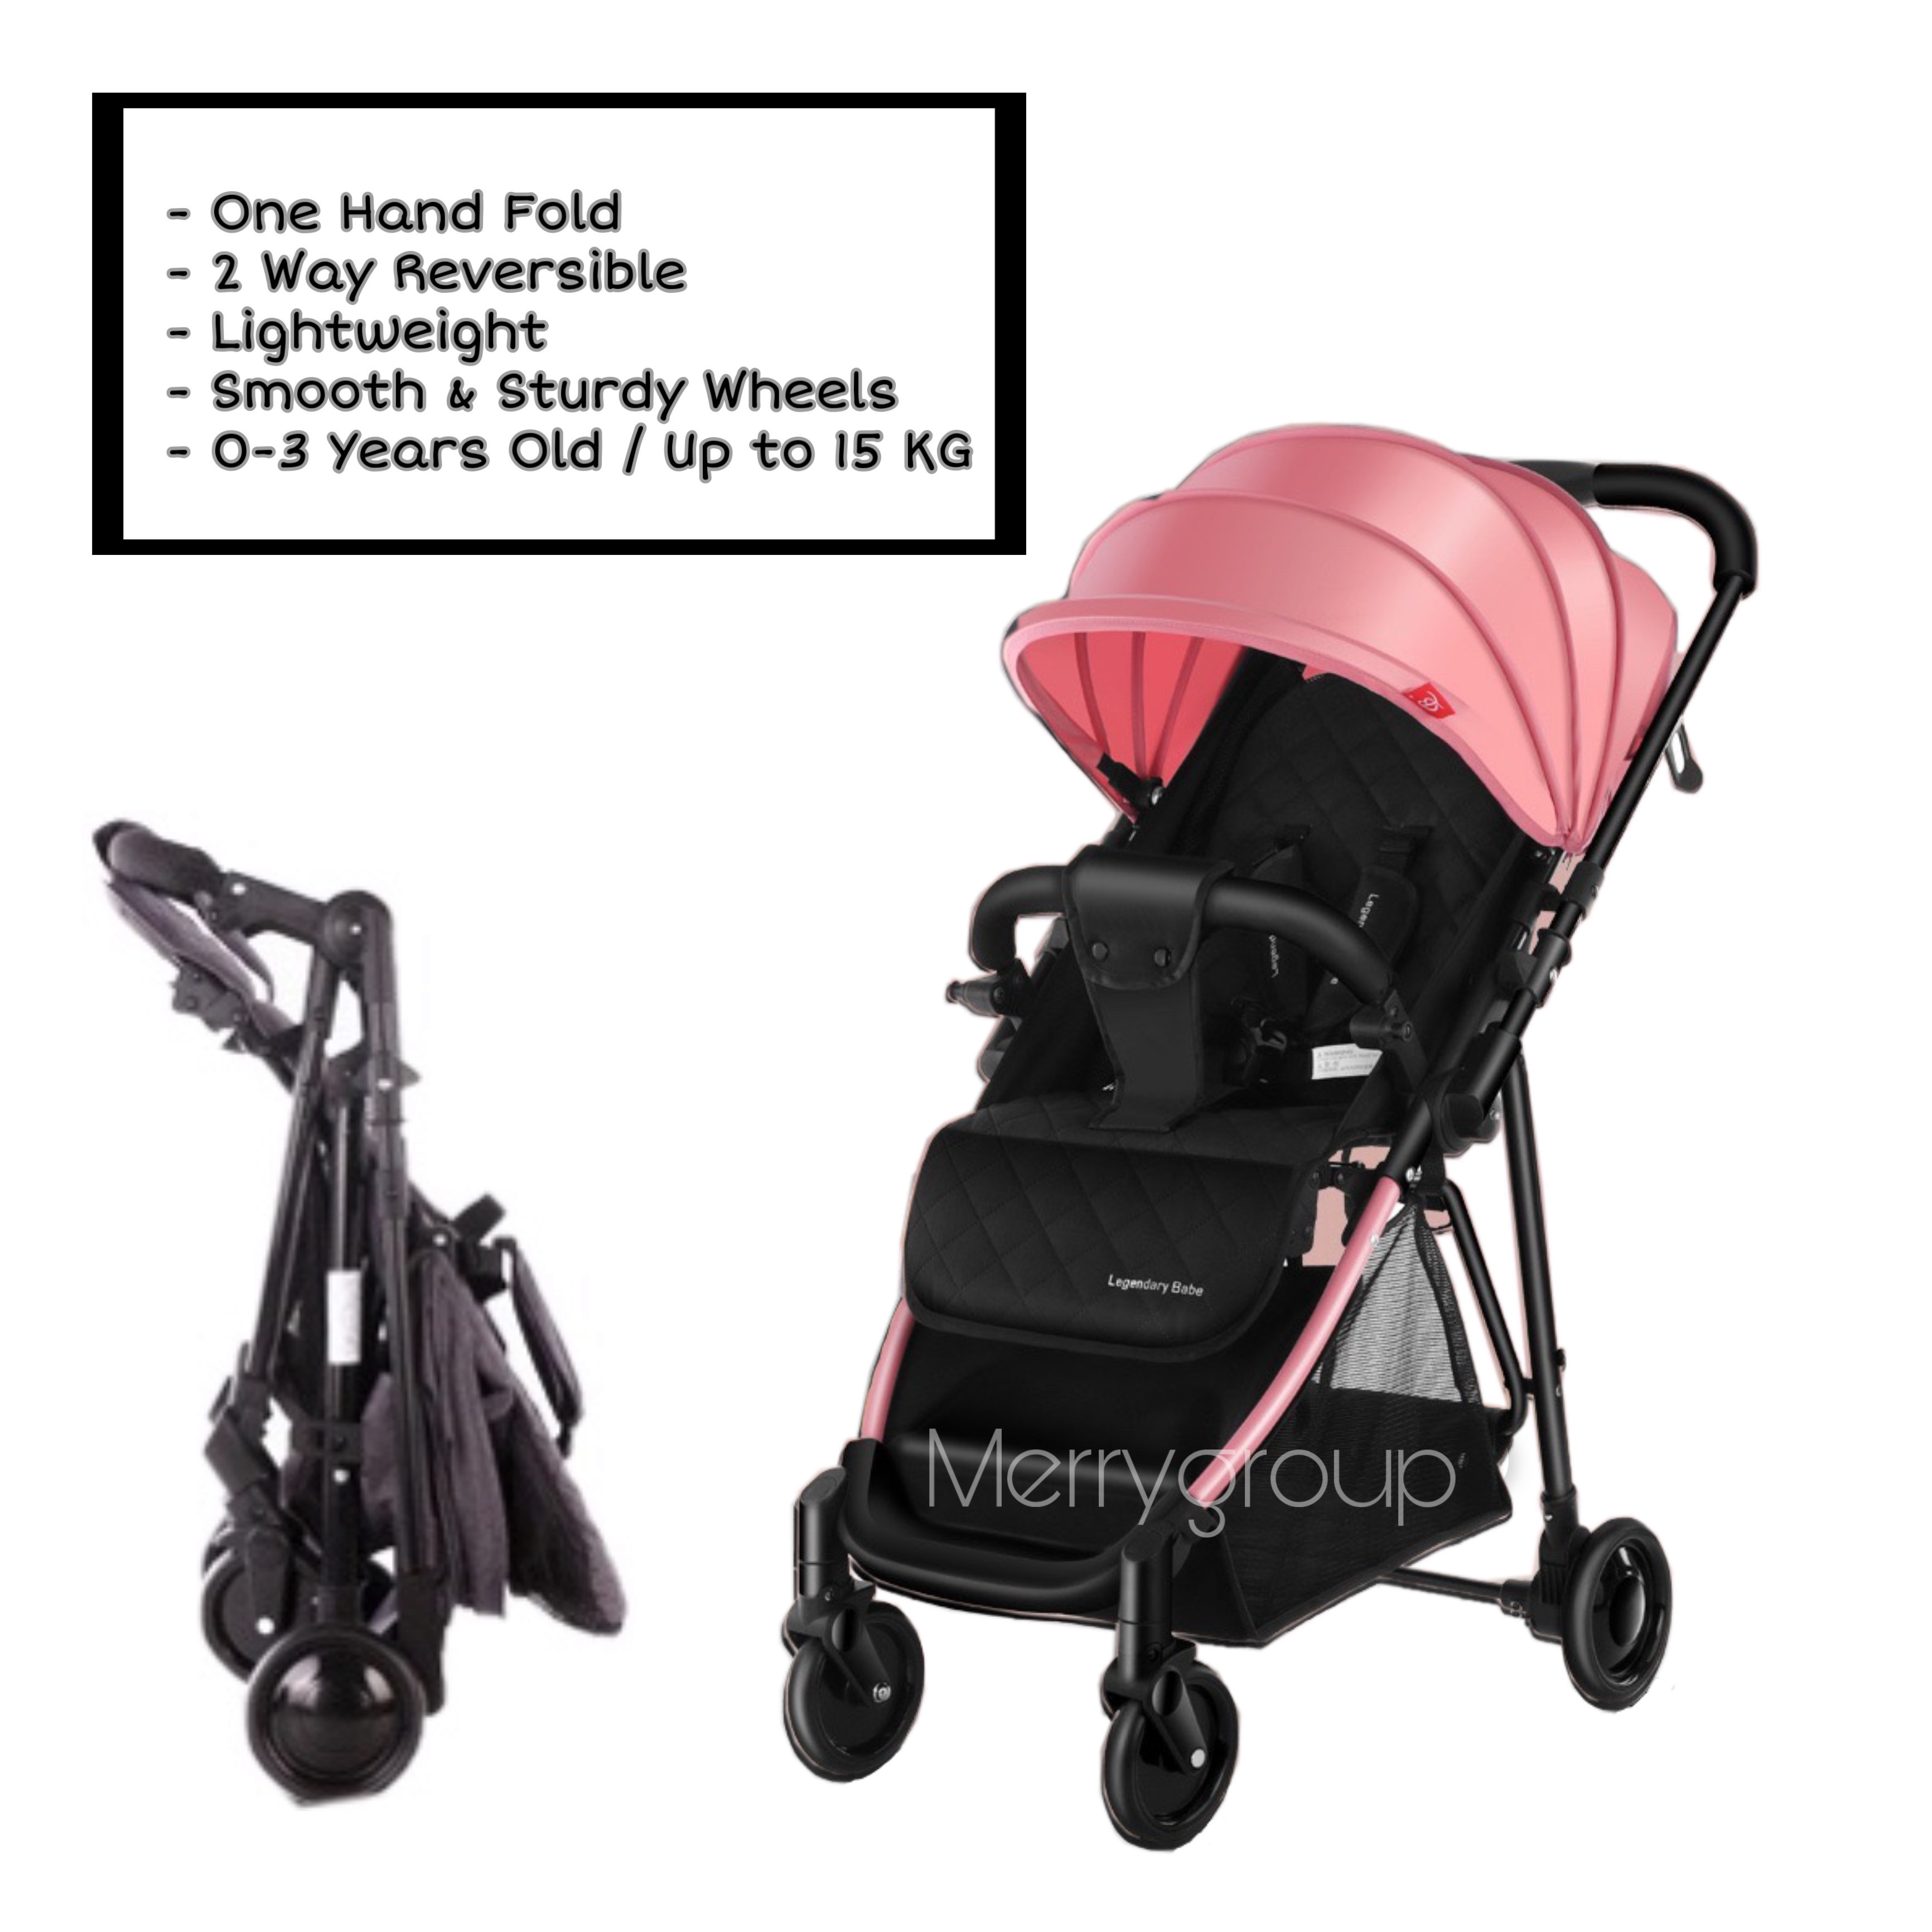 New Arrival 2 Way Reversible One Hand Fold Lightweight Baby Stroller Children Kid Toddler Newborn Infant Portable Compact Baby Pram Check In Kg Waterproof Folding Trolley Carriage Sets Pockit Multifunction Double Twins Girl Boy High Chair Reclinable Seat